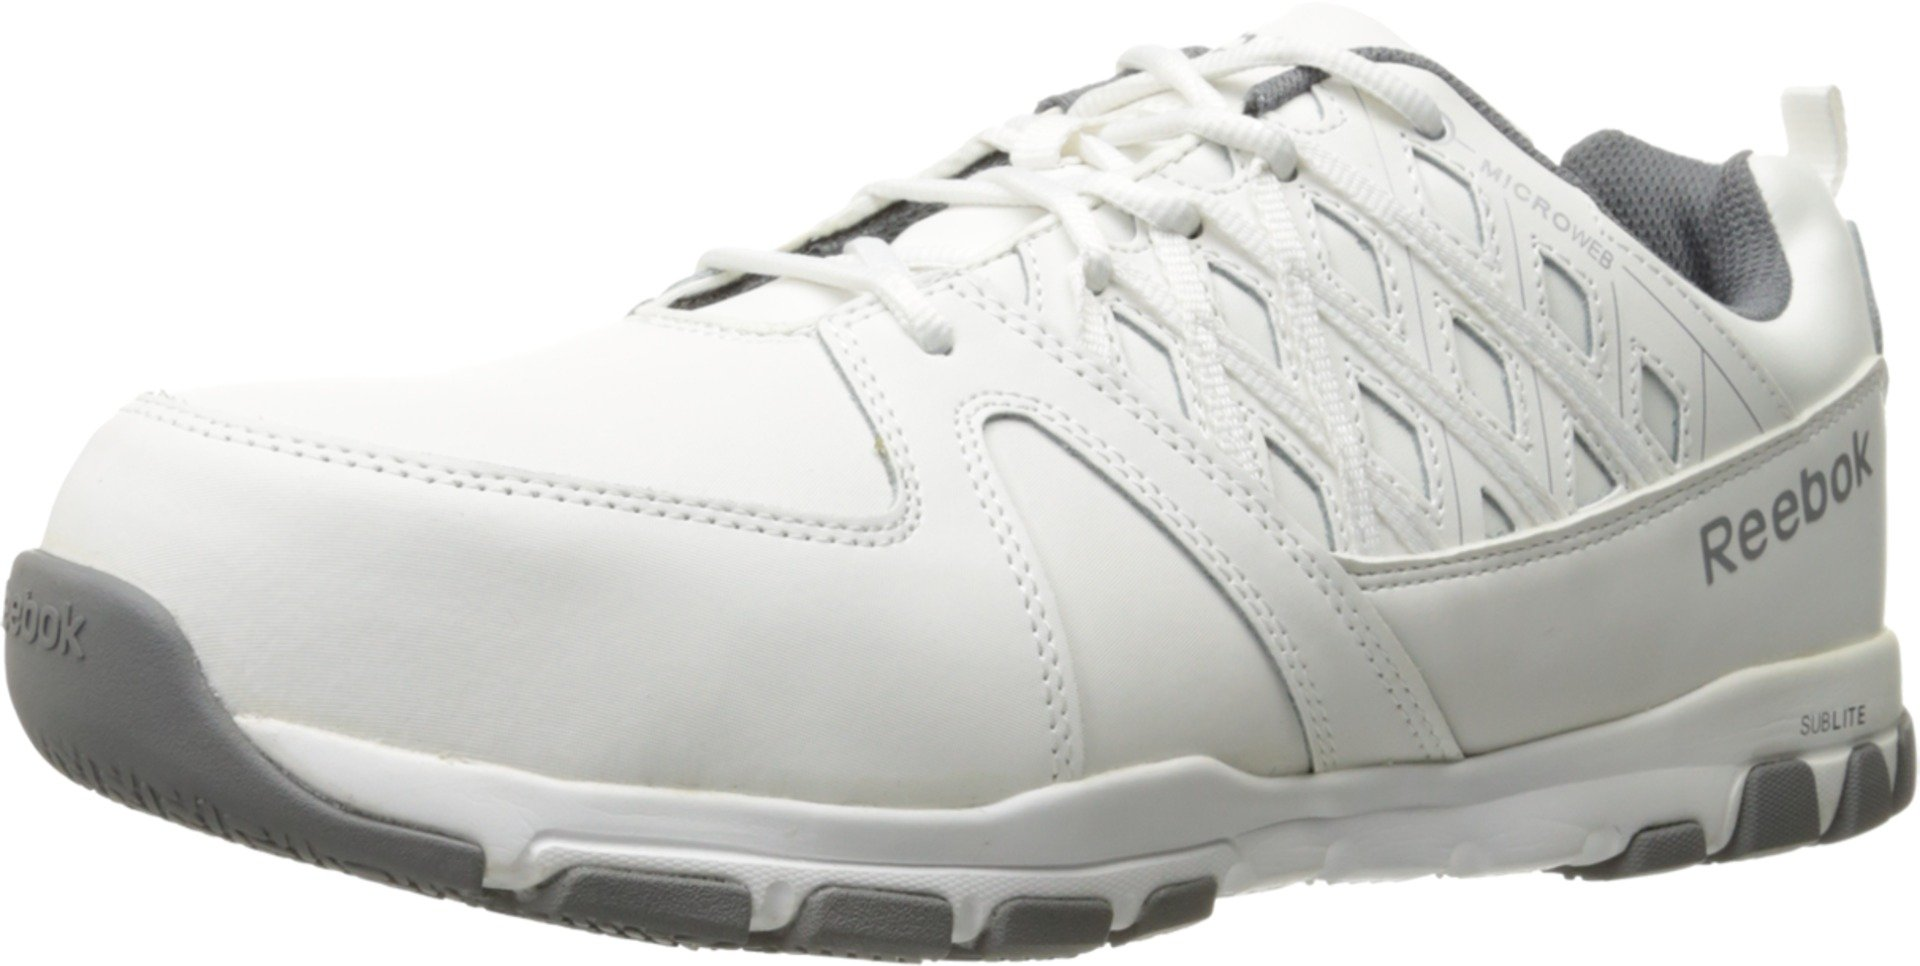 Reebok Work Men's Sublite Work White Boot